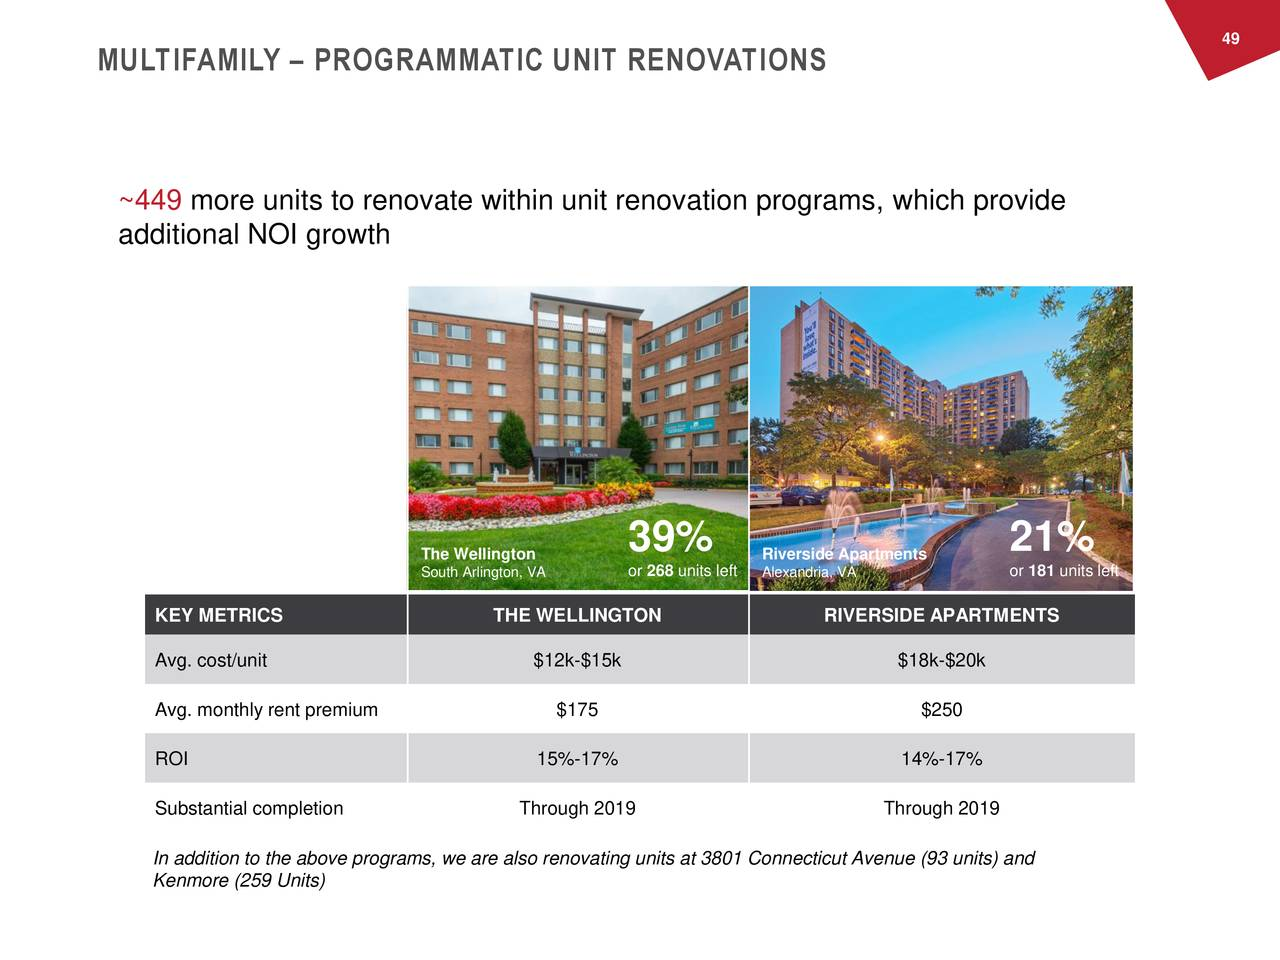 MULTIFAMILY – PROGRAMMATIC UNIT RENOVATIONS ~449 more units to renovate within unit renovation programs, which provide additional NOI growth The Wellington 39% Riverside Apartments 21% South Arlington, VA or 268 unitsAlexandria, VA or 181 units left KEY METRICS THE WELLINGTON RIVERSIDE APARTMENTS Avg. cost/unit $12k-$15k $18k-$20k Avg. monthly rent premium $175 $250 ROI 15%-17% 14%-17% Substantial completion Through 2019 Through 2019 In addition to the above programs, we are also renovating units at 3801 Connecticut Avenue (93 units) and Kenmore (259 Units)